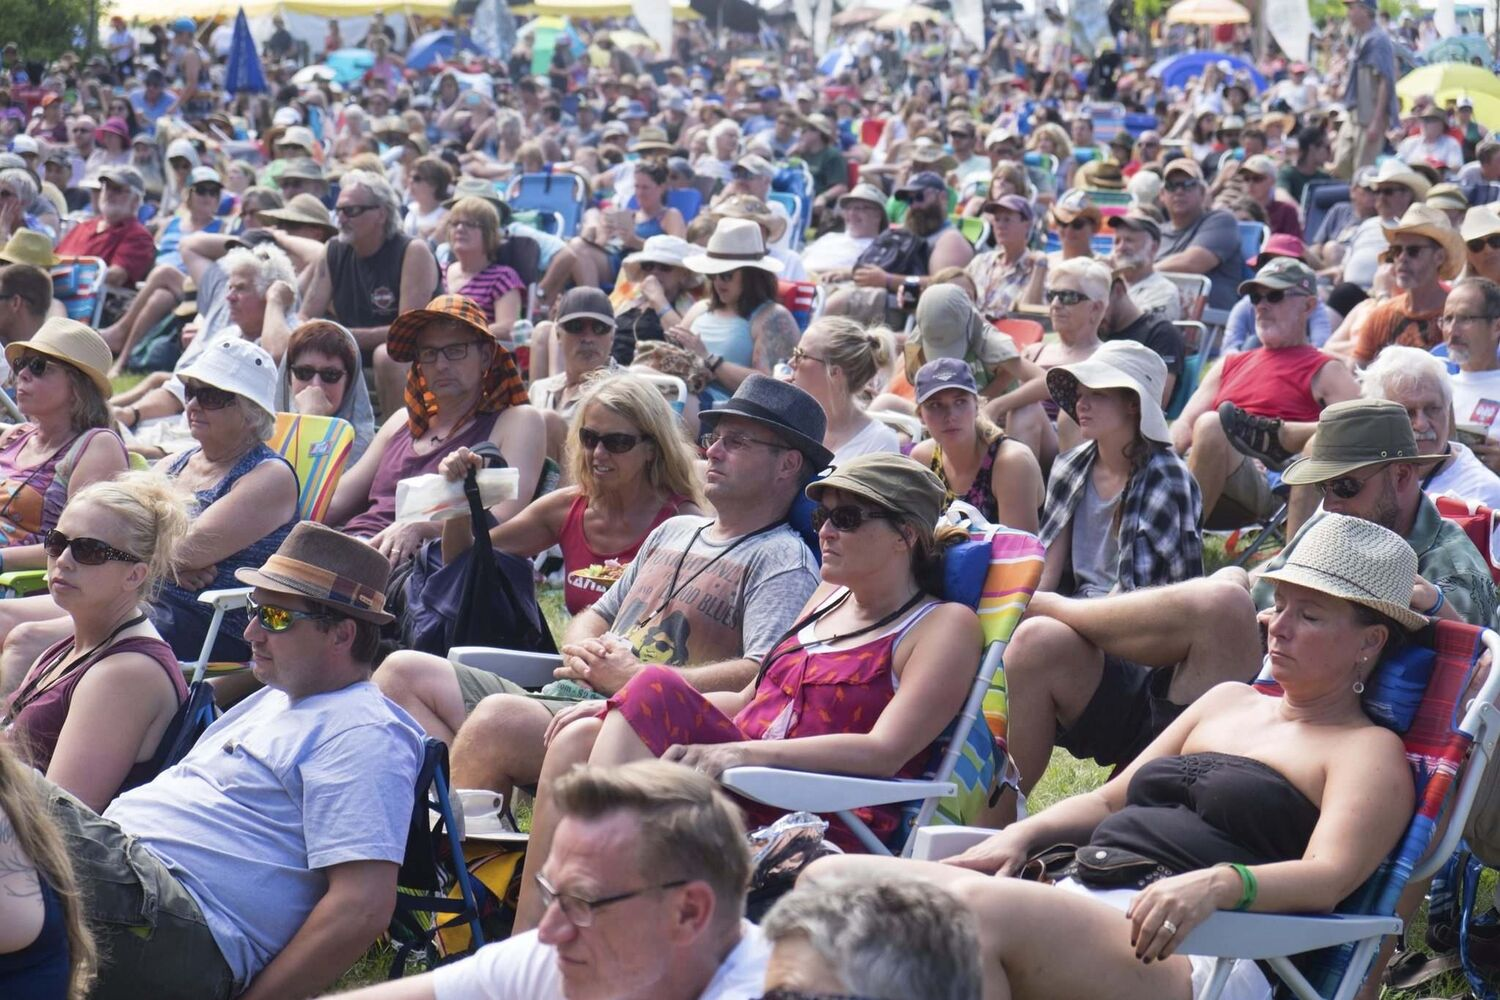 ZACHARY PRONG / WINNIPEG FREE PRESS</p></p><p>The Audience enjoying shows on Friday's main stage during Winnipeg Folk Festival.</p>